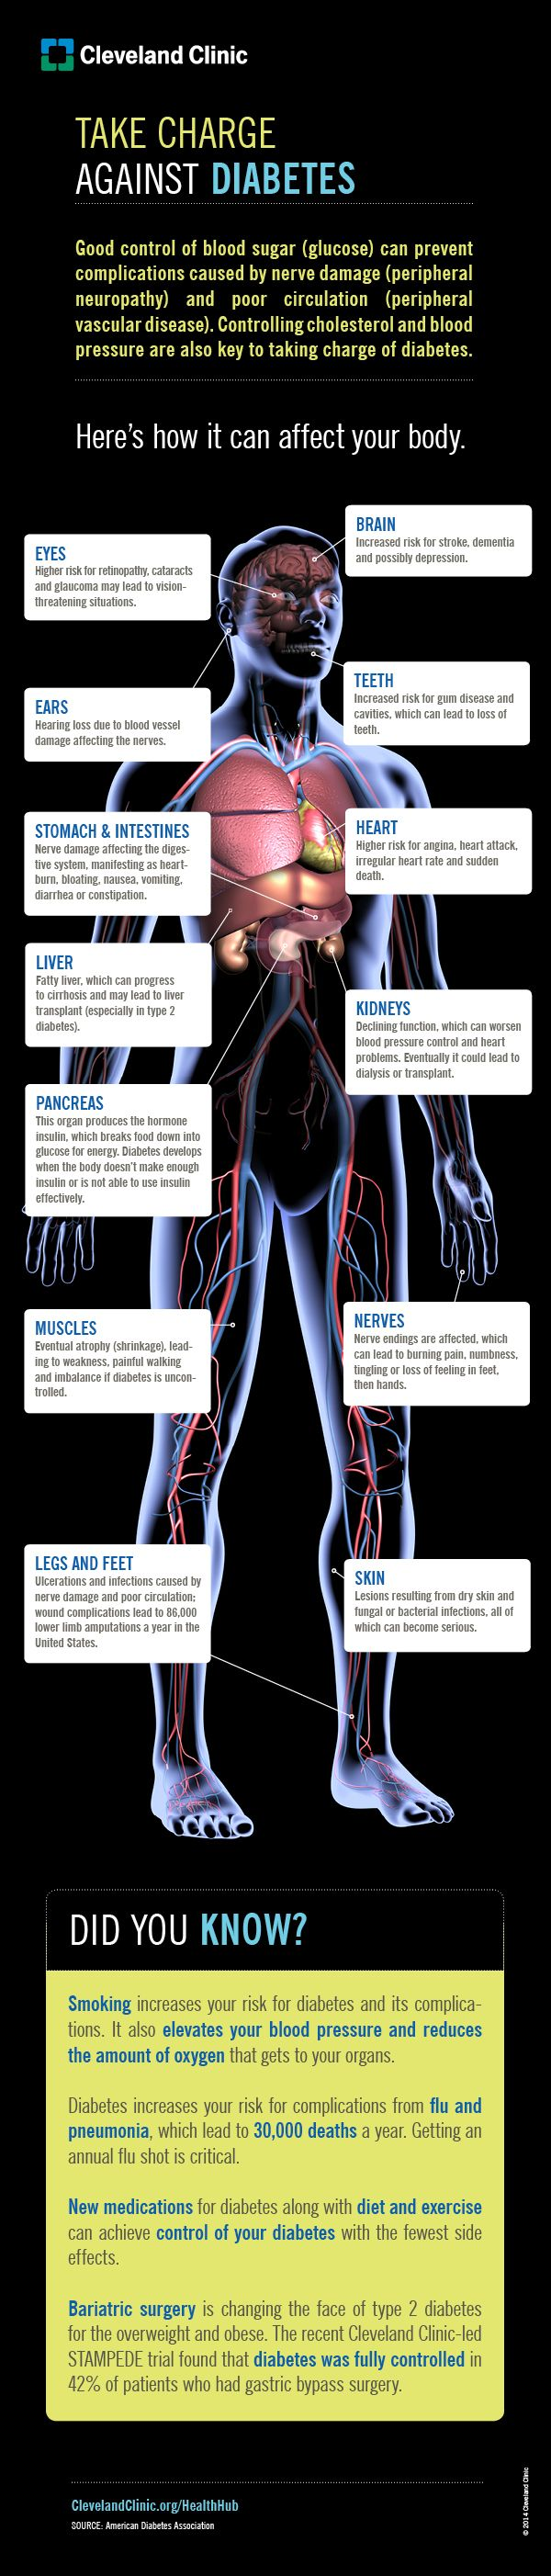 This infographic of the human body provides an overview of what can happen if diabetes is left unchecked. HealthHub from Cleveland Clinic